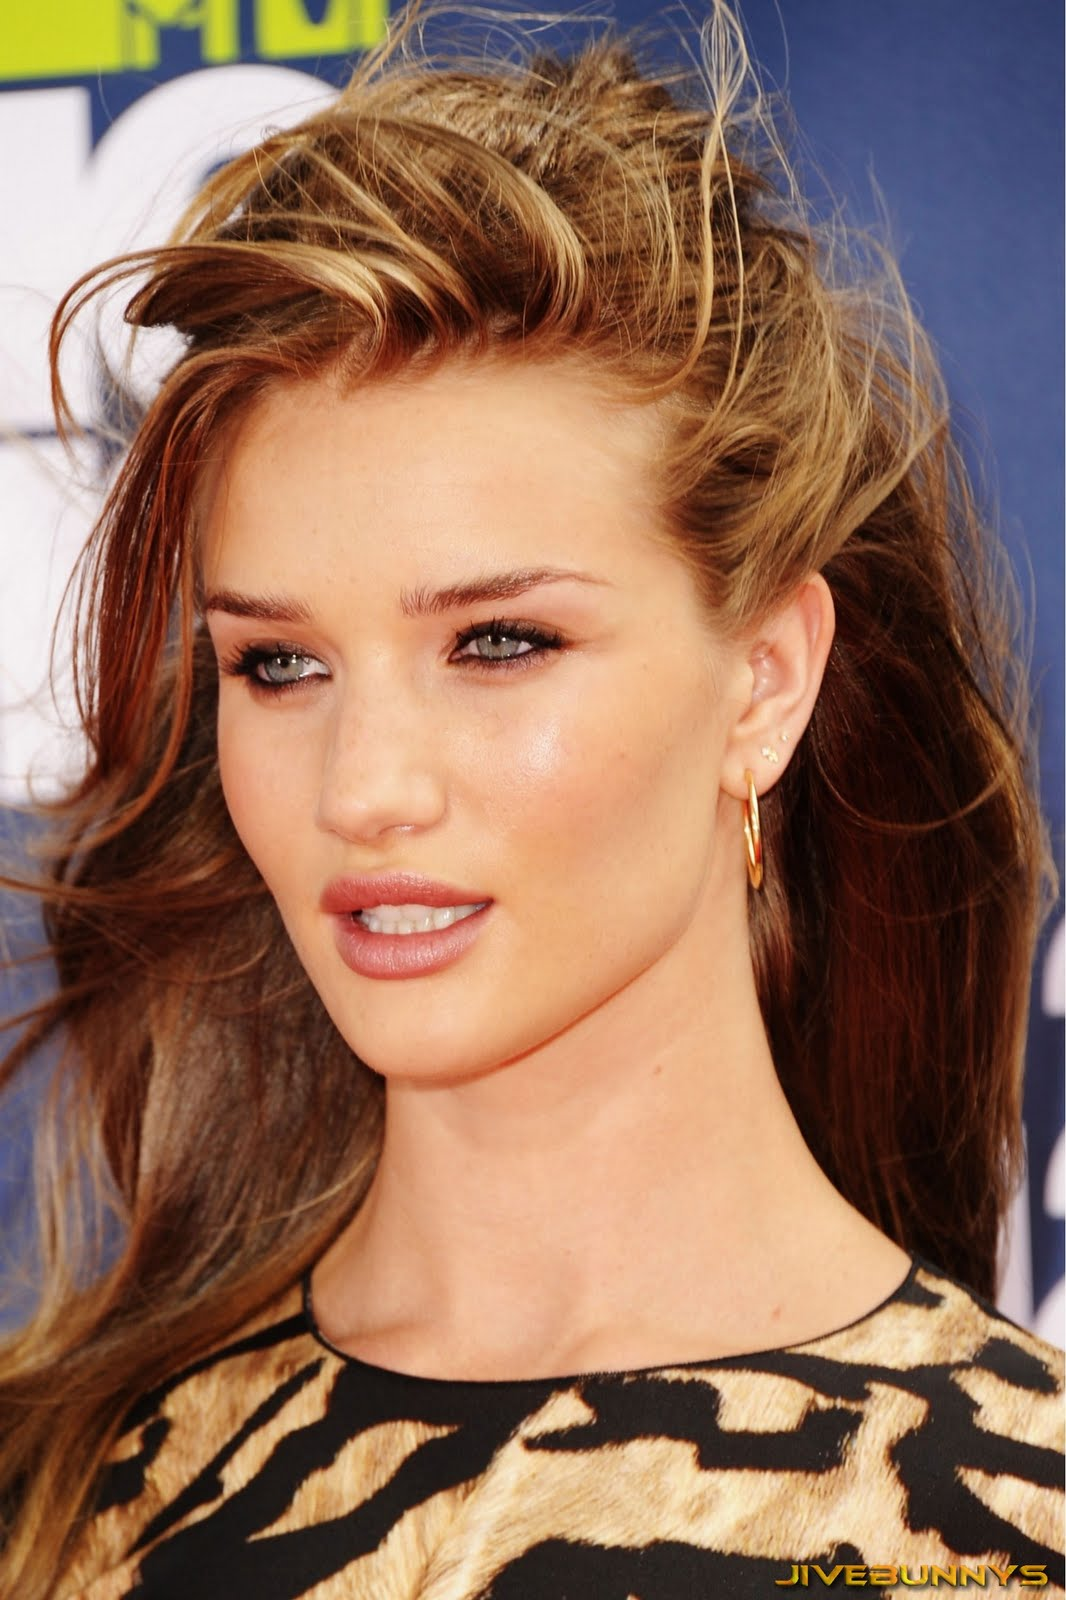 Rosie Huntington-Whiteley Special Pictures (9)